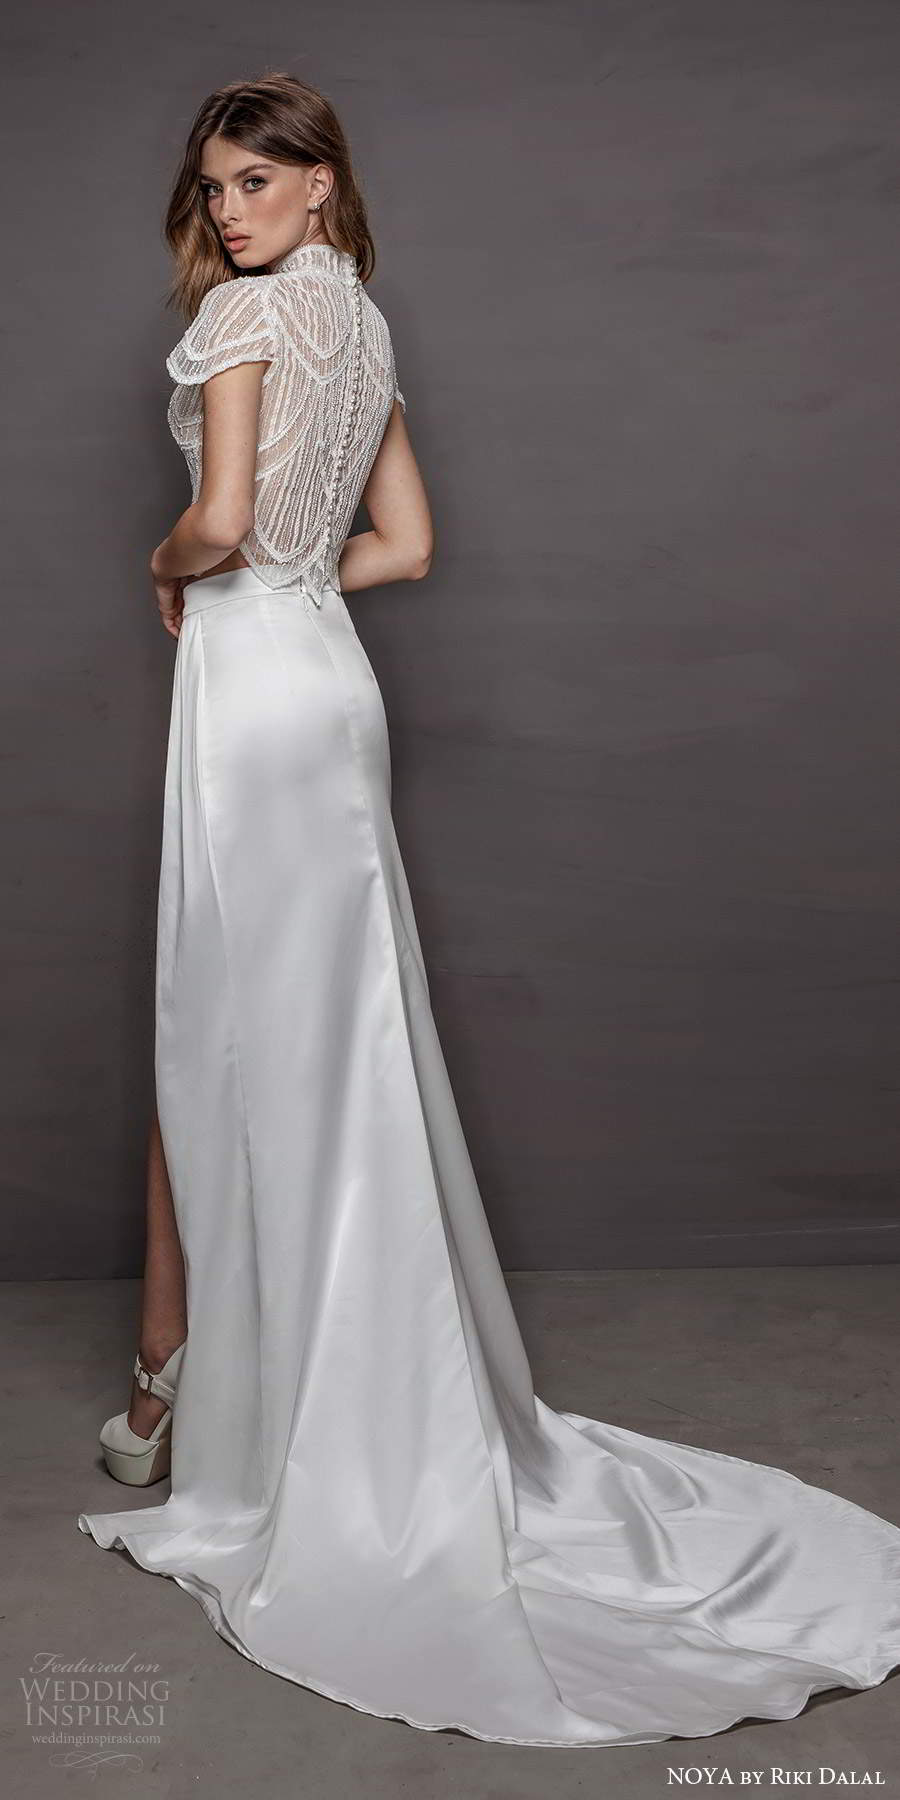 noya riki dalal 2021 bridal short sleeve high neckline embellished top slit skirt 2 piece sheath wedding dress (16) bv